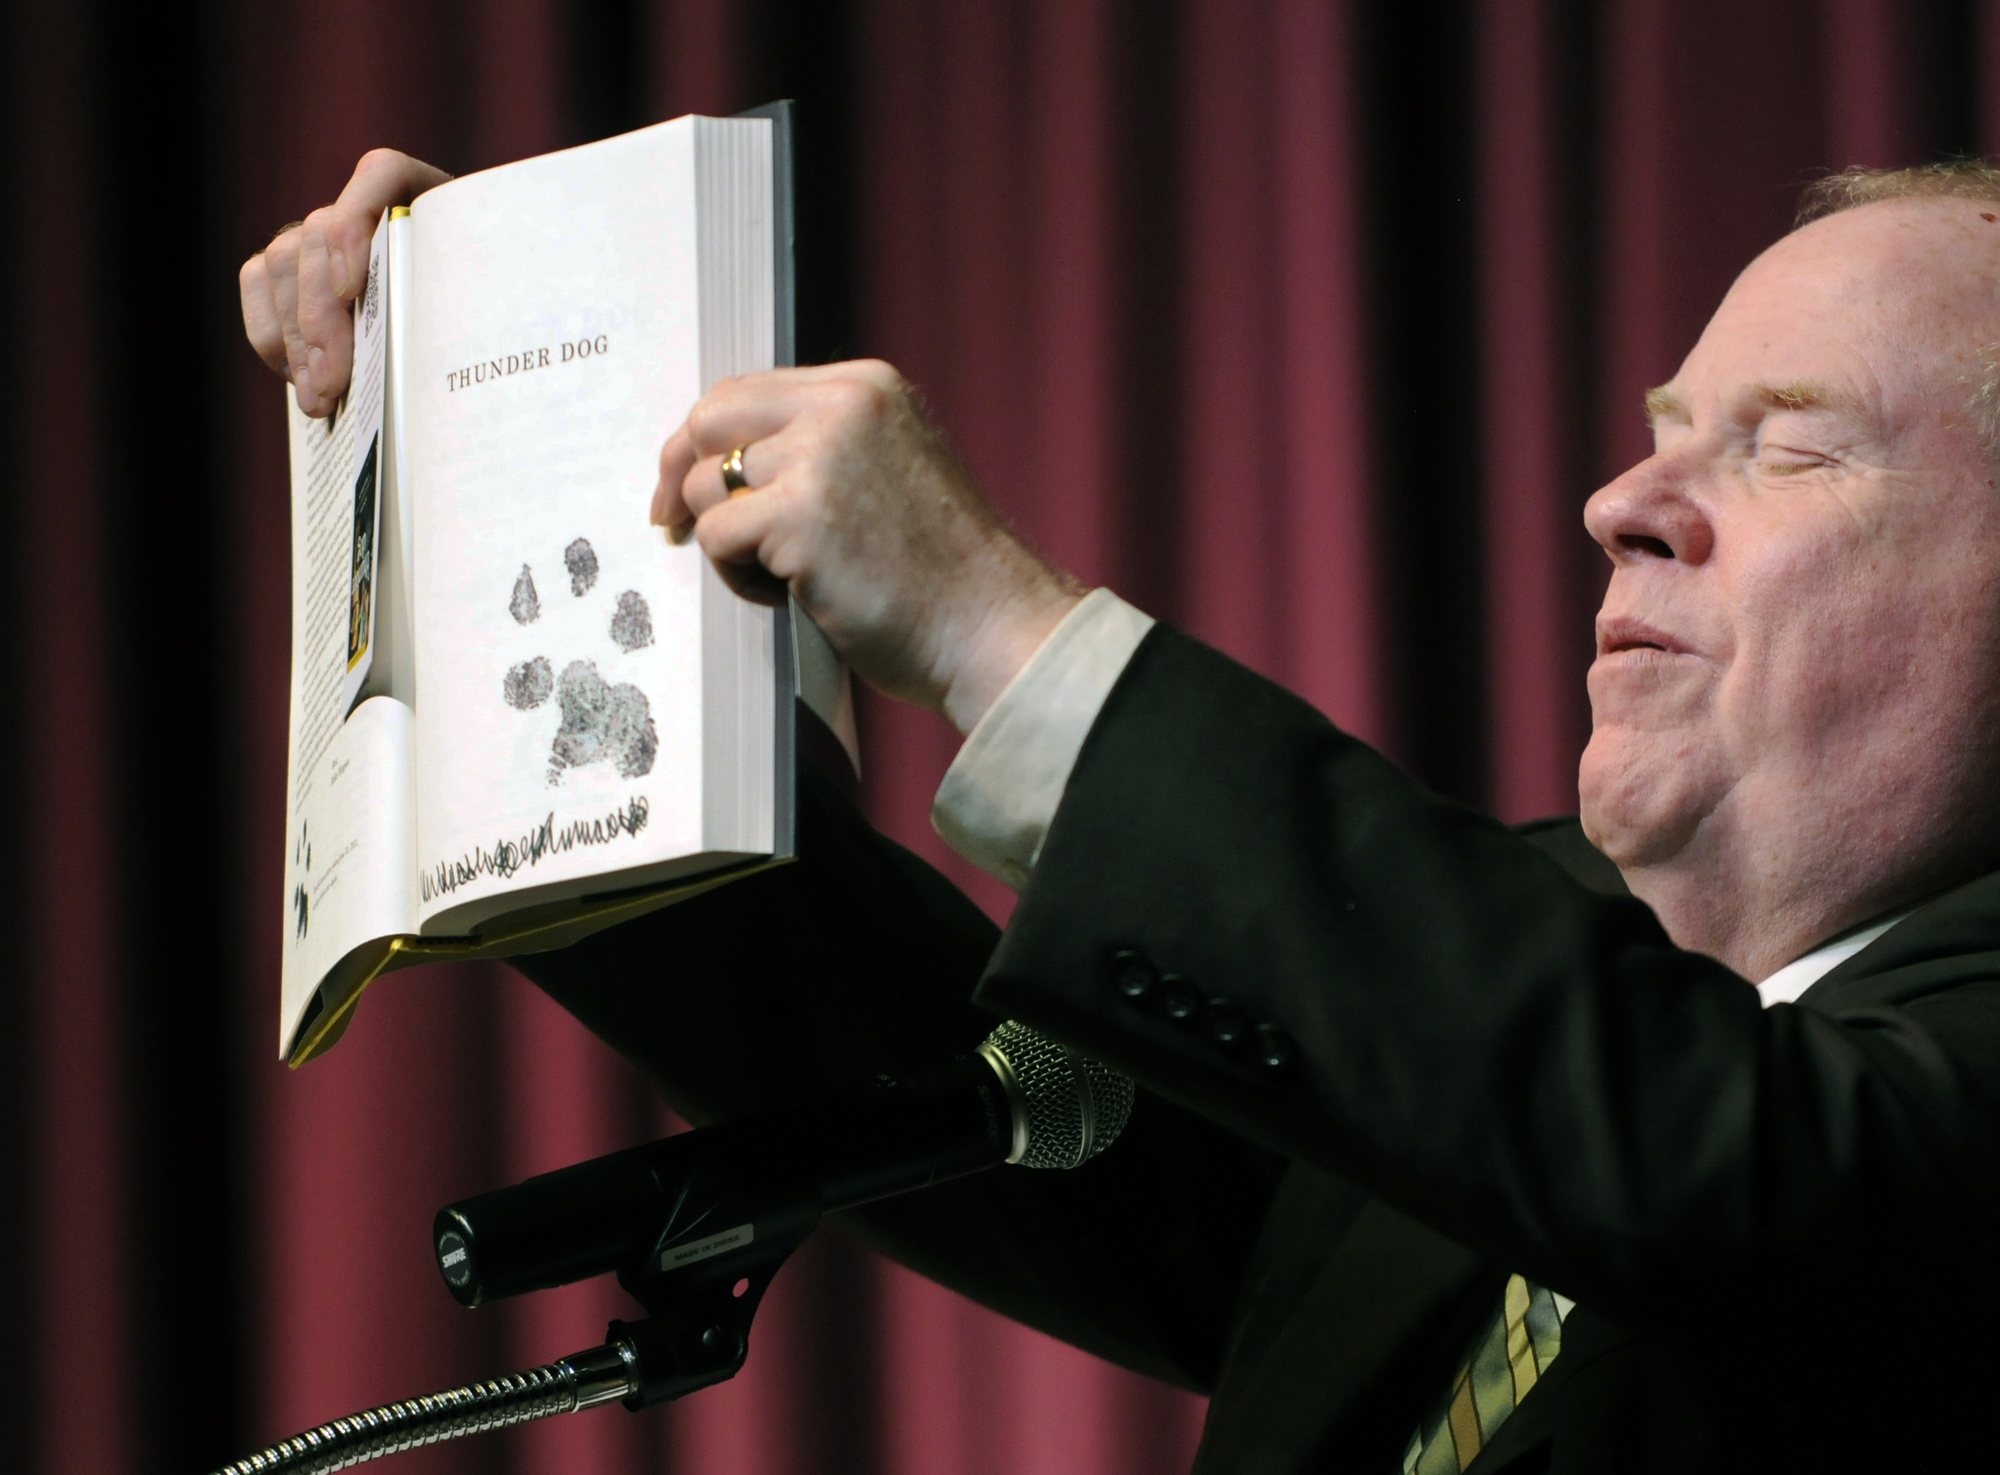 Speaking to Lincoln Southeast students and staff, Michael Hingson shows a paw print in his book Thunder Dog. Photo: Robert Becker